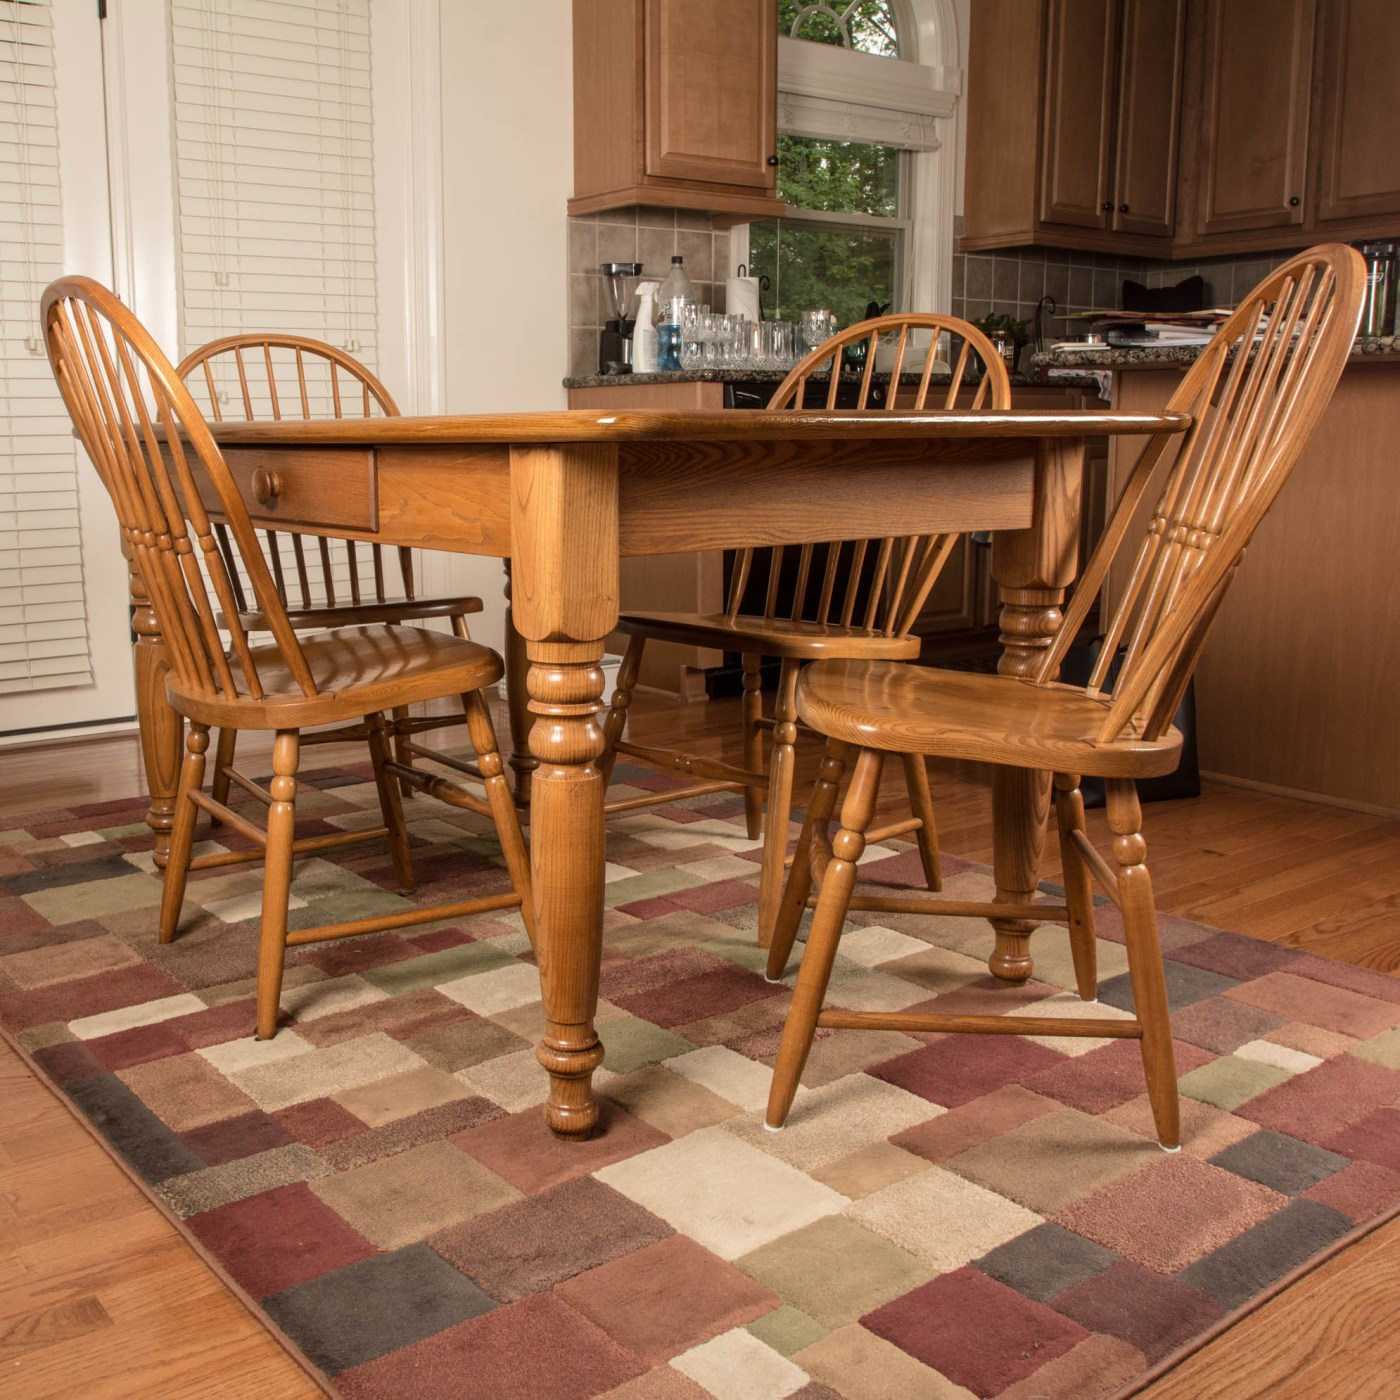 Farmhouse Dining Table And Chairs S Bent And Bros Oak Farmhouse Style Dining Room Table And